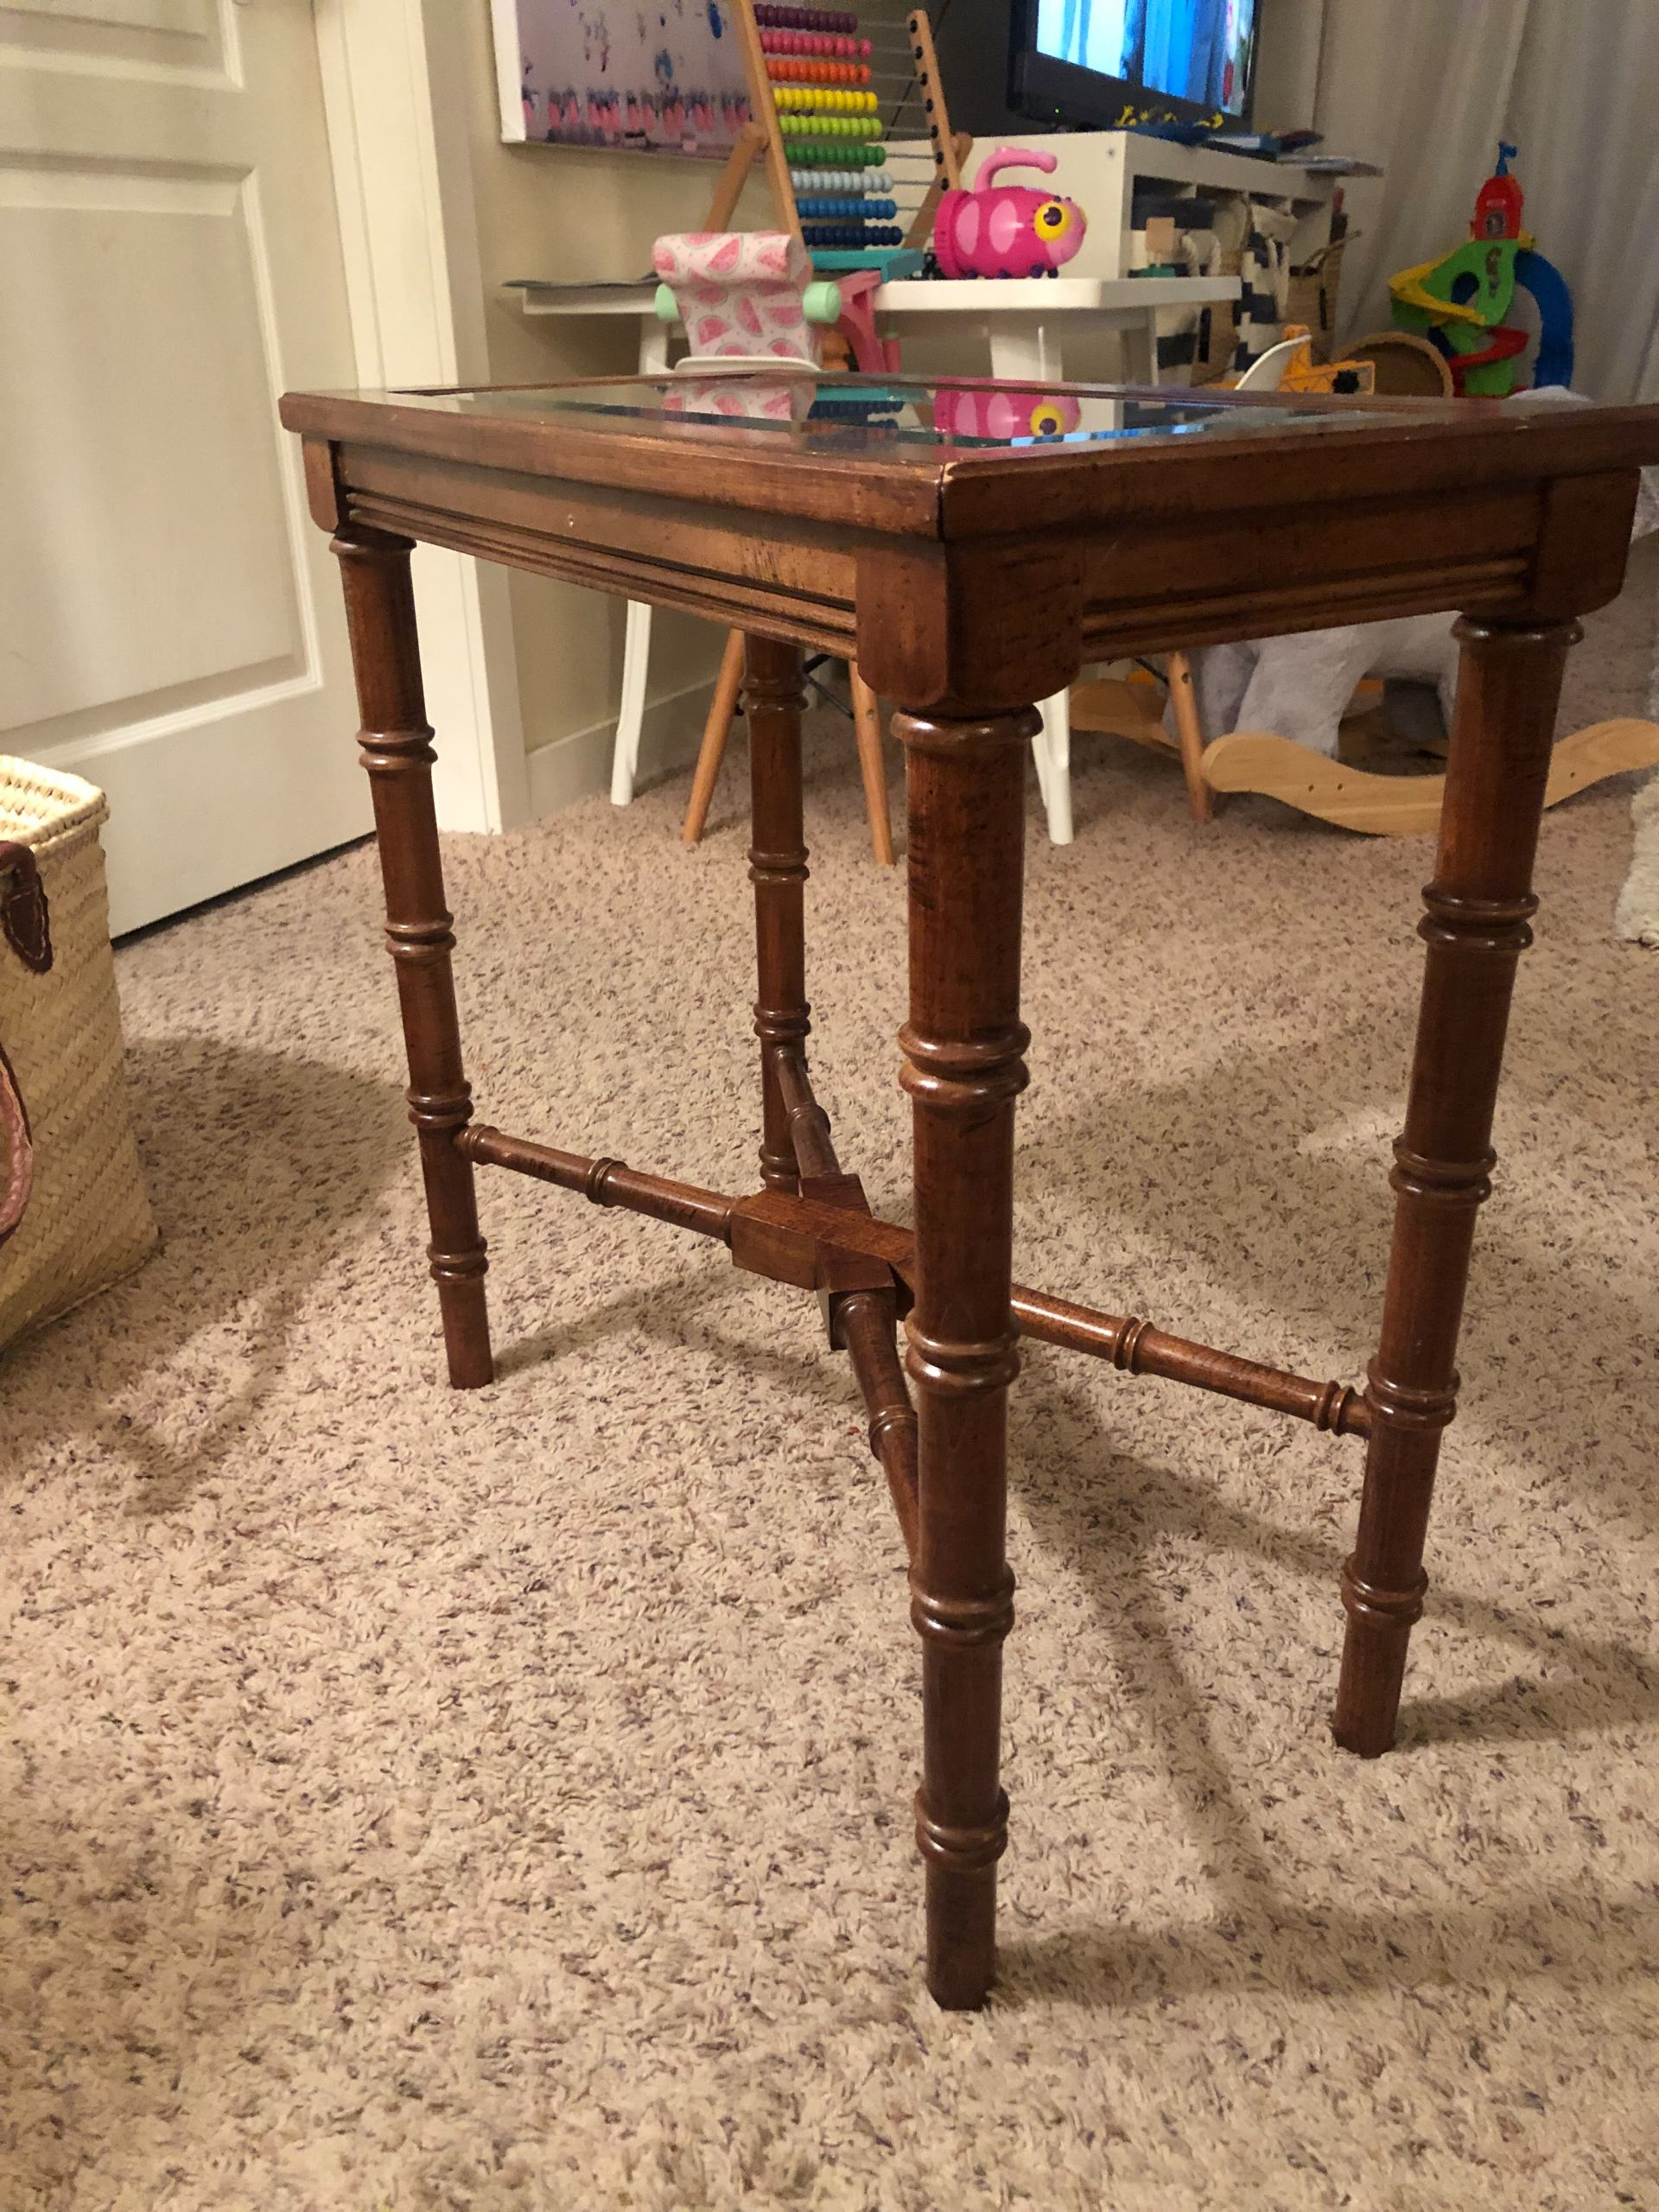 vintage furniture DIY - chinoiserie - faux bamboo side table - furniture DIY - painted furniture